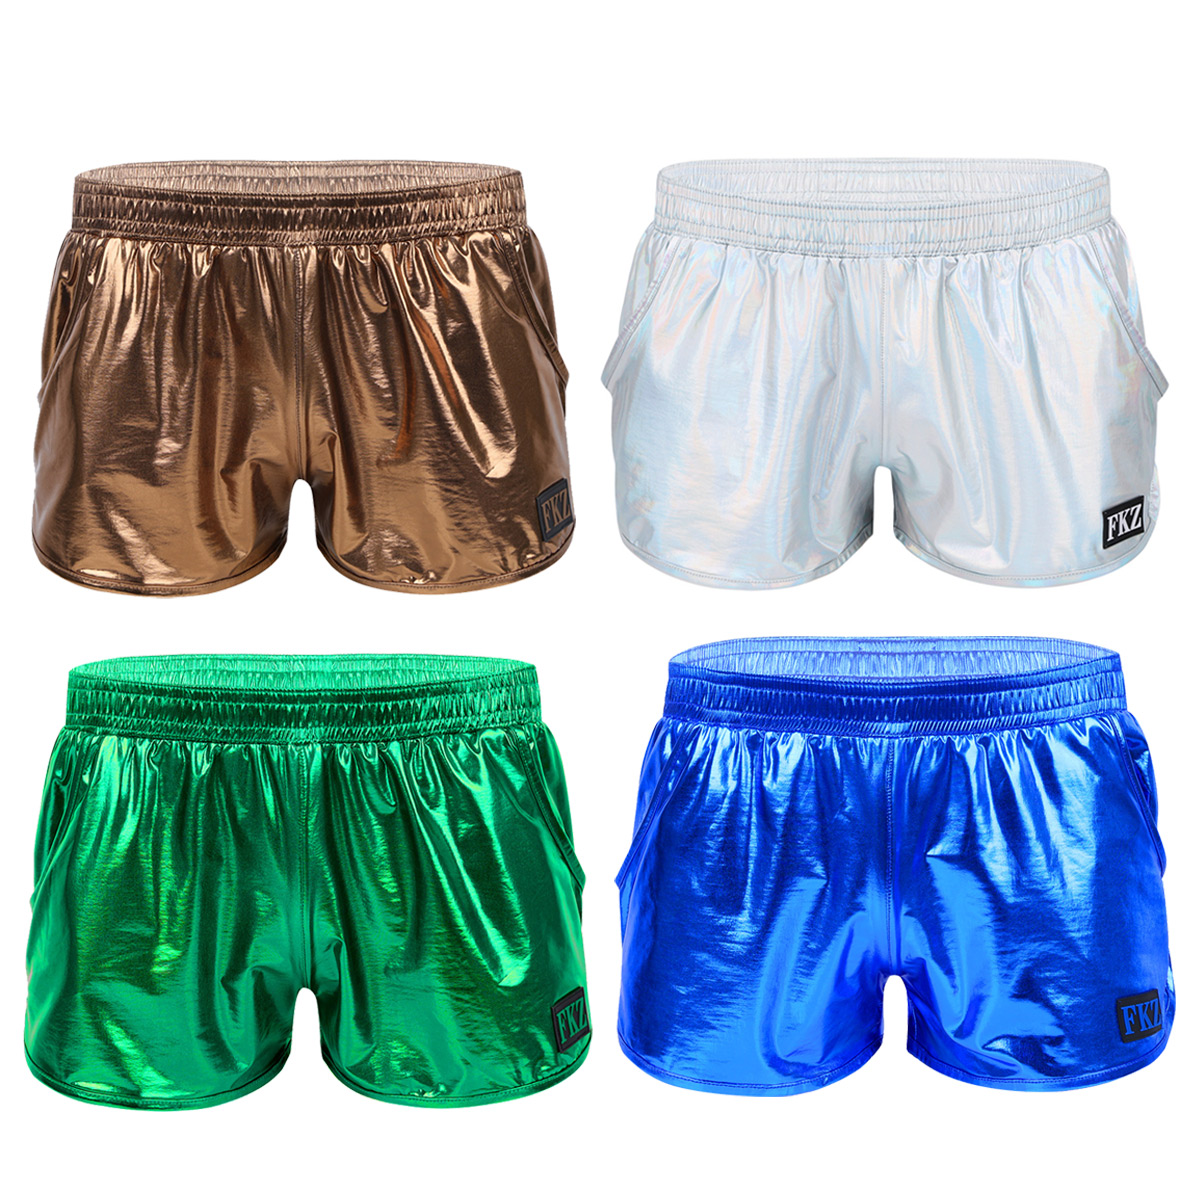 Men Hot Shorts Shiny Metallic Low Rise Boxer Shorts Stage Performance Clubwear Costumes Gymnastic Swimsuit Homme Pants Underwear